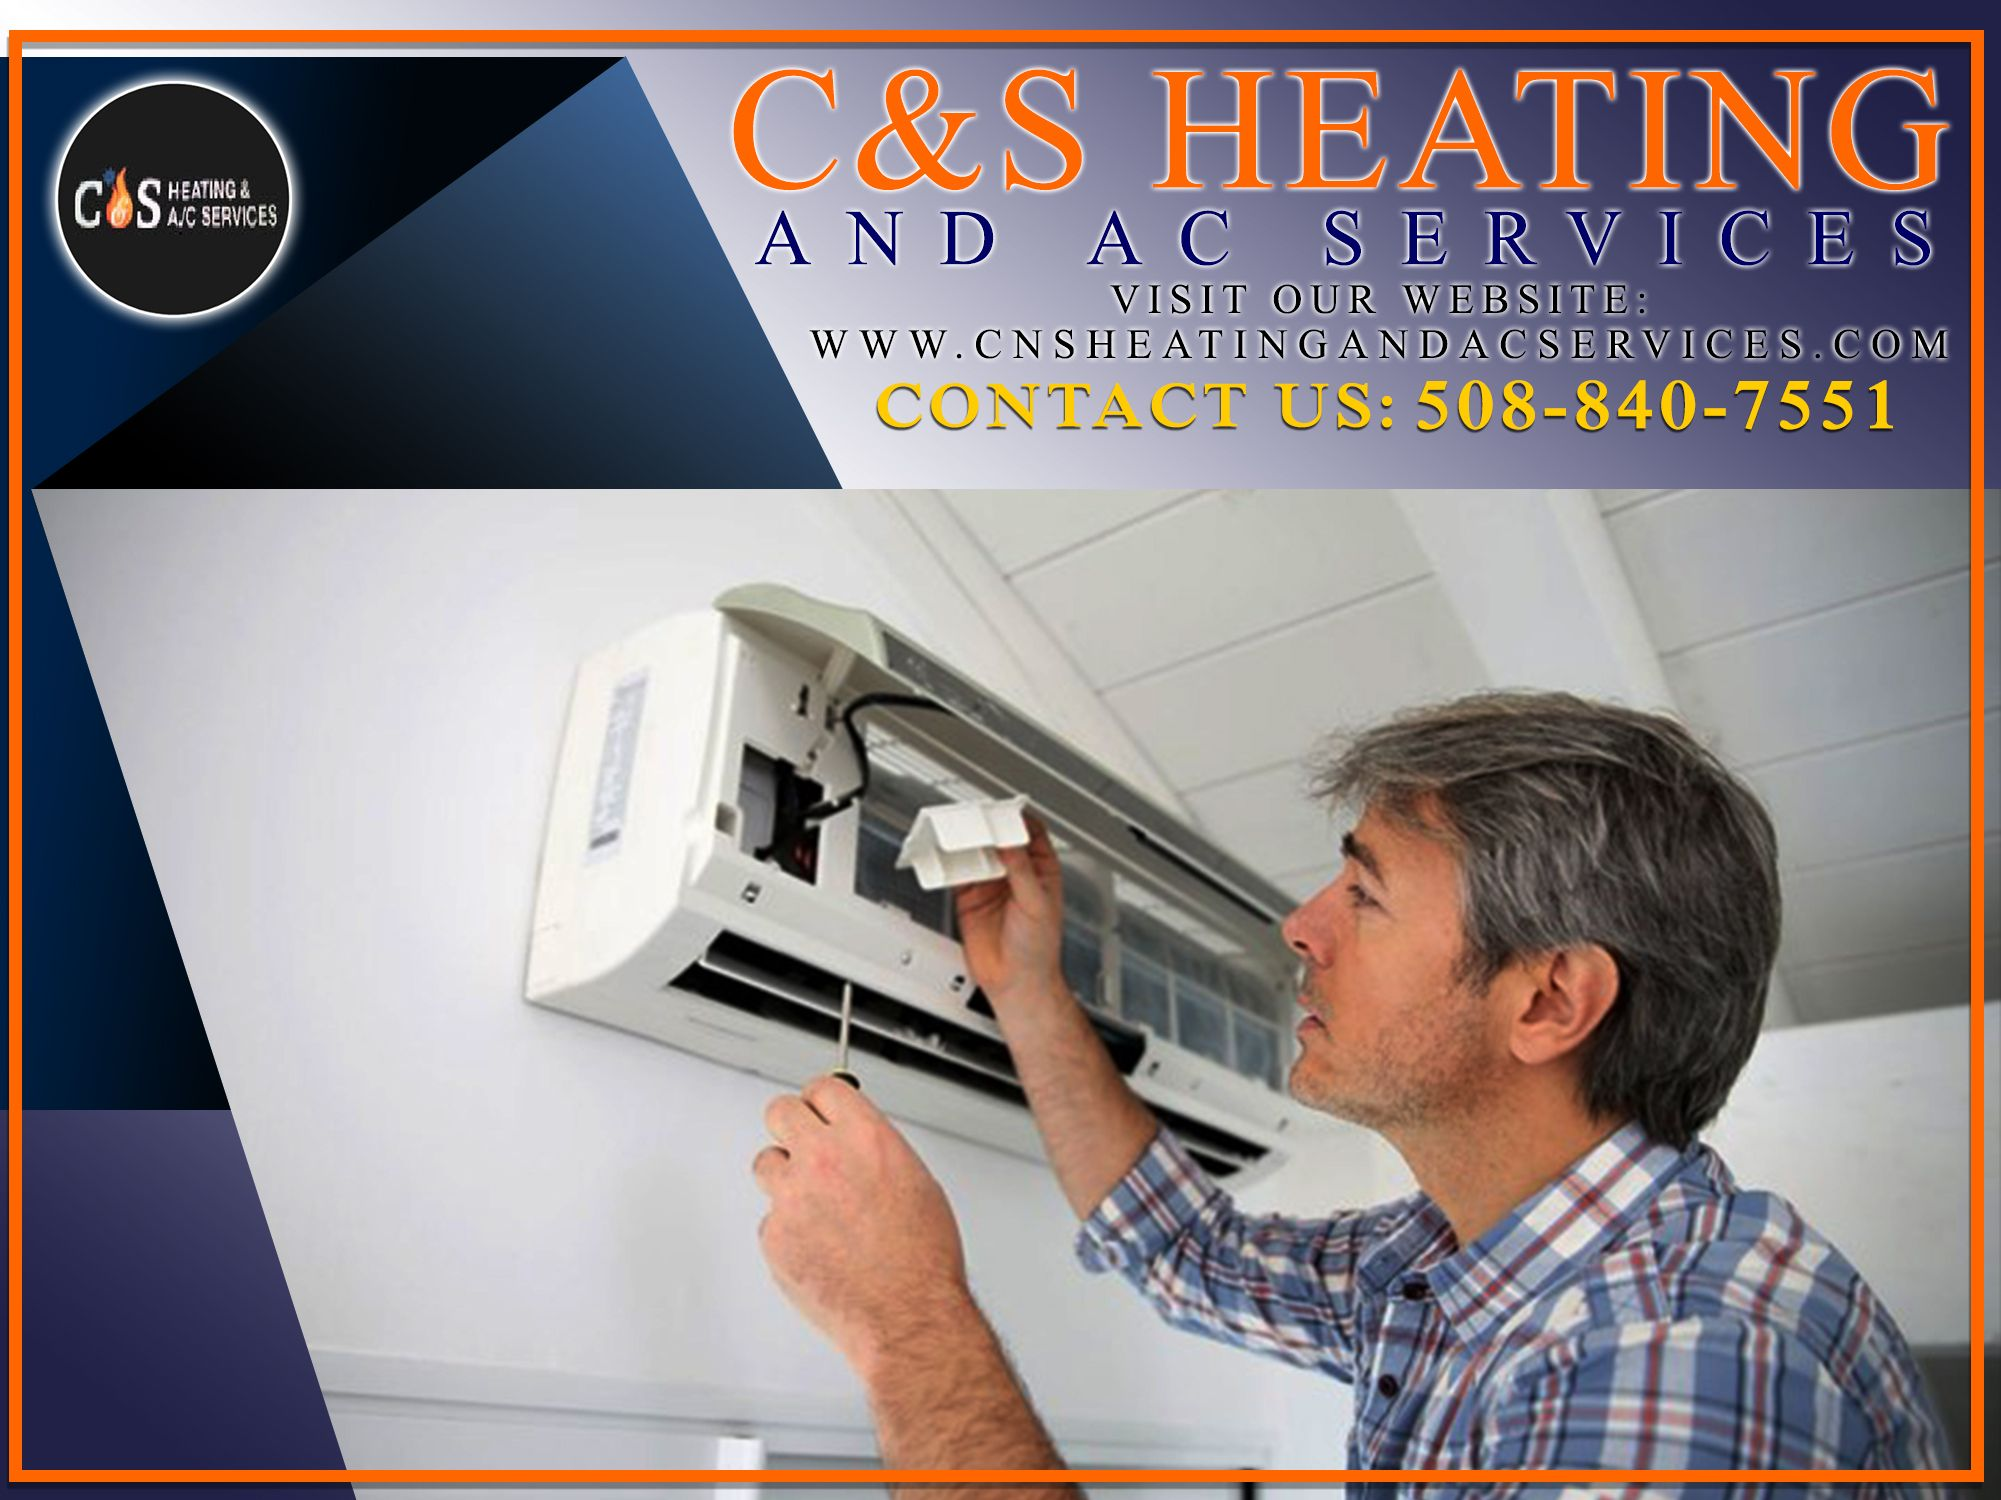 C&S Heating and AC Services is a fully licensed and